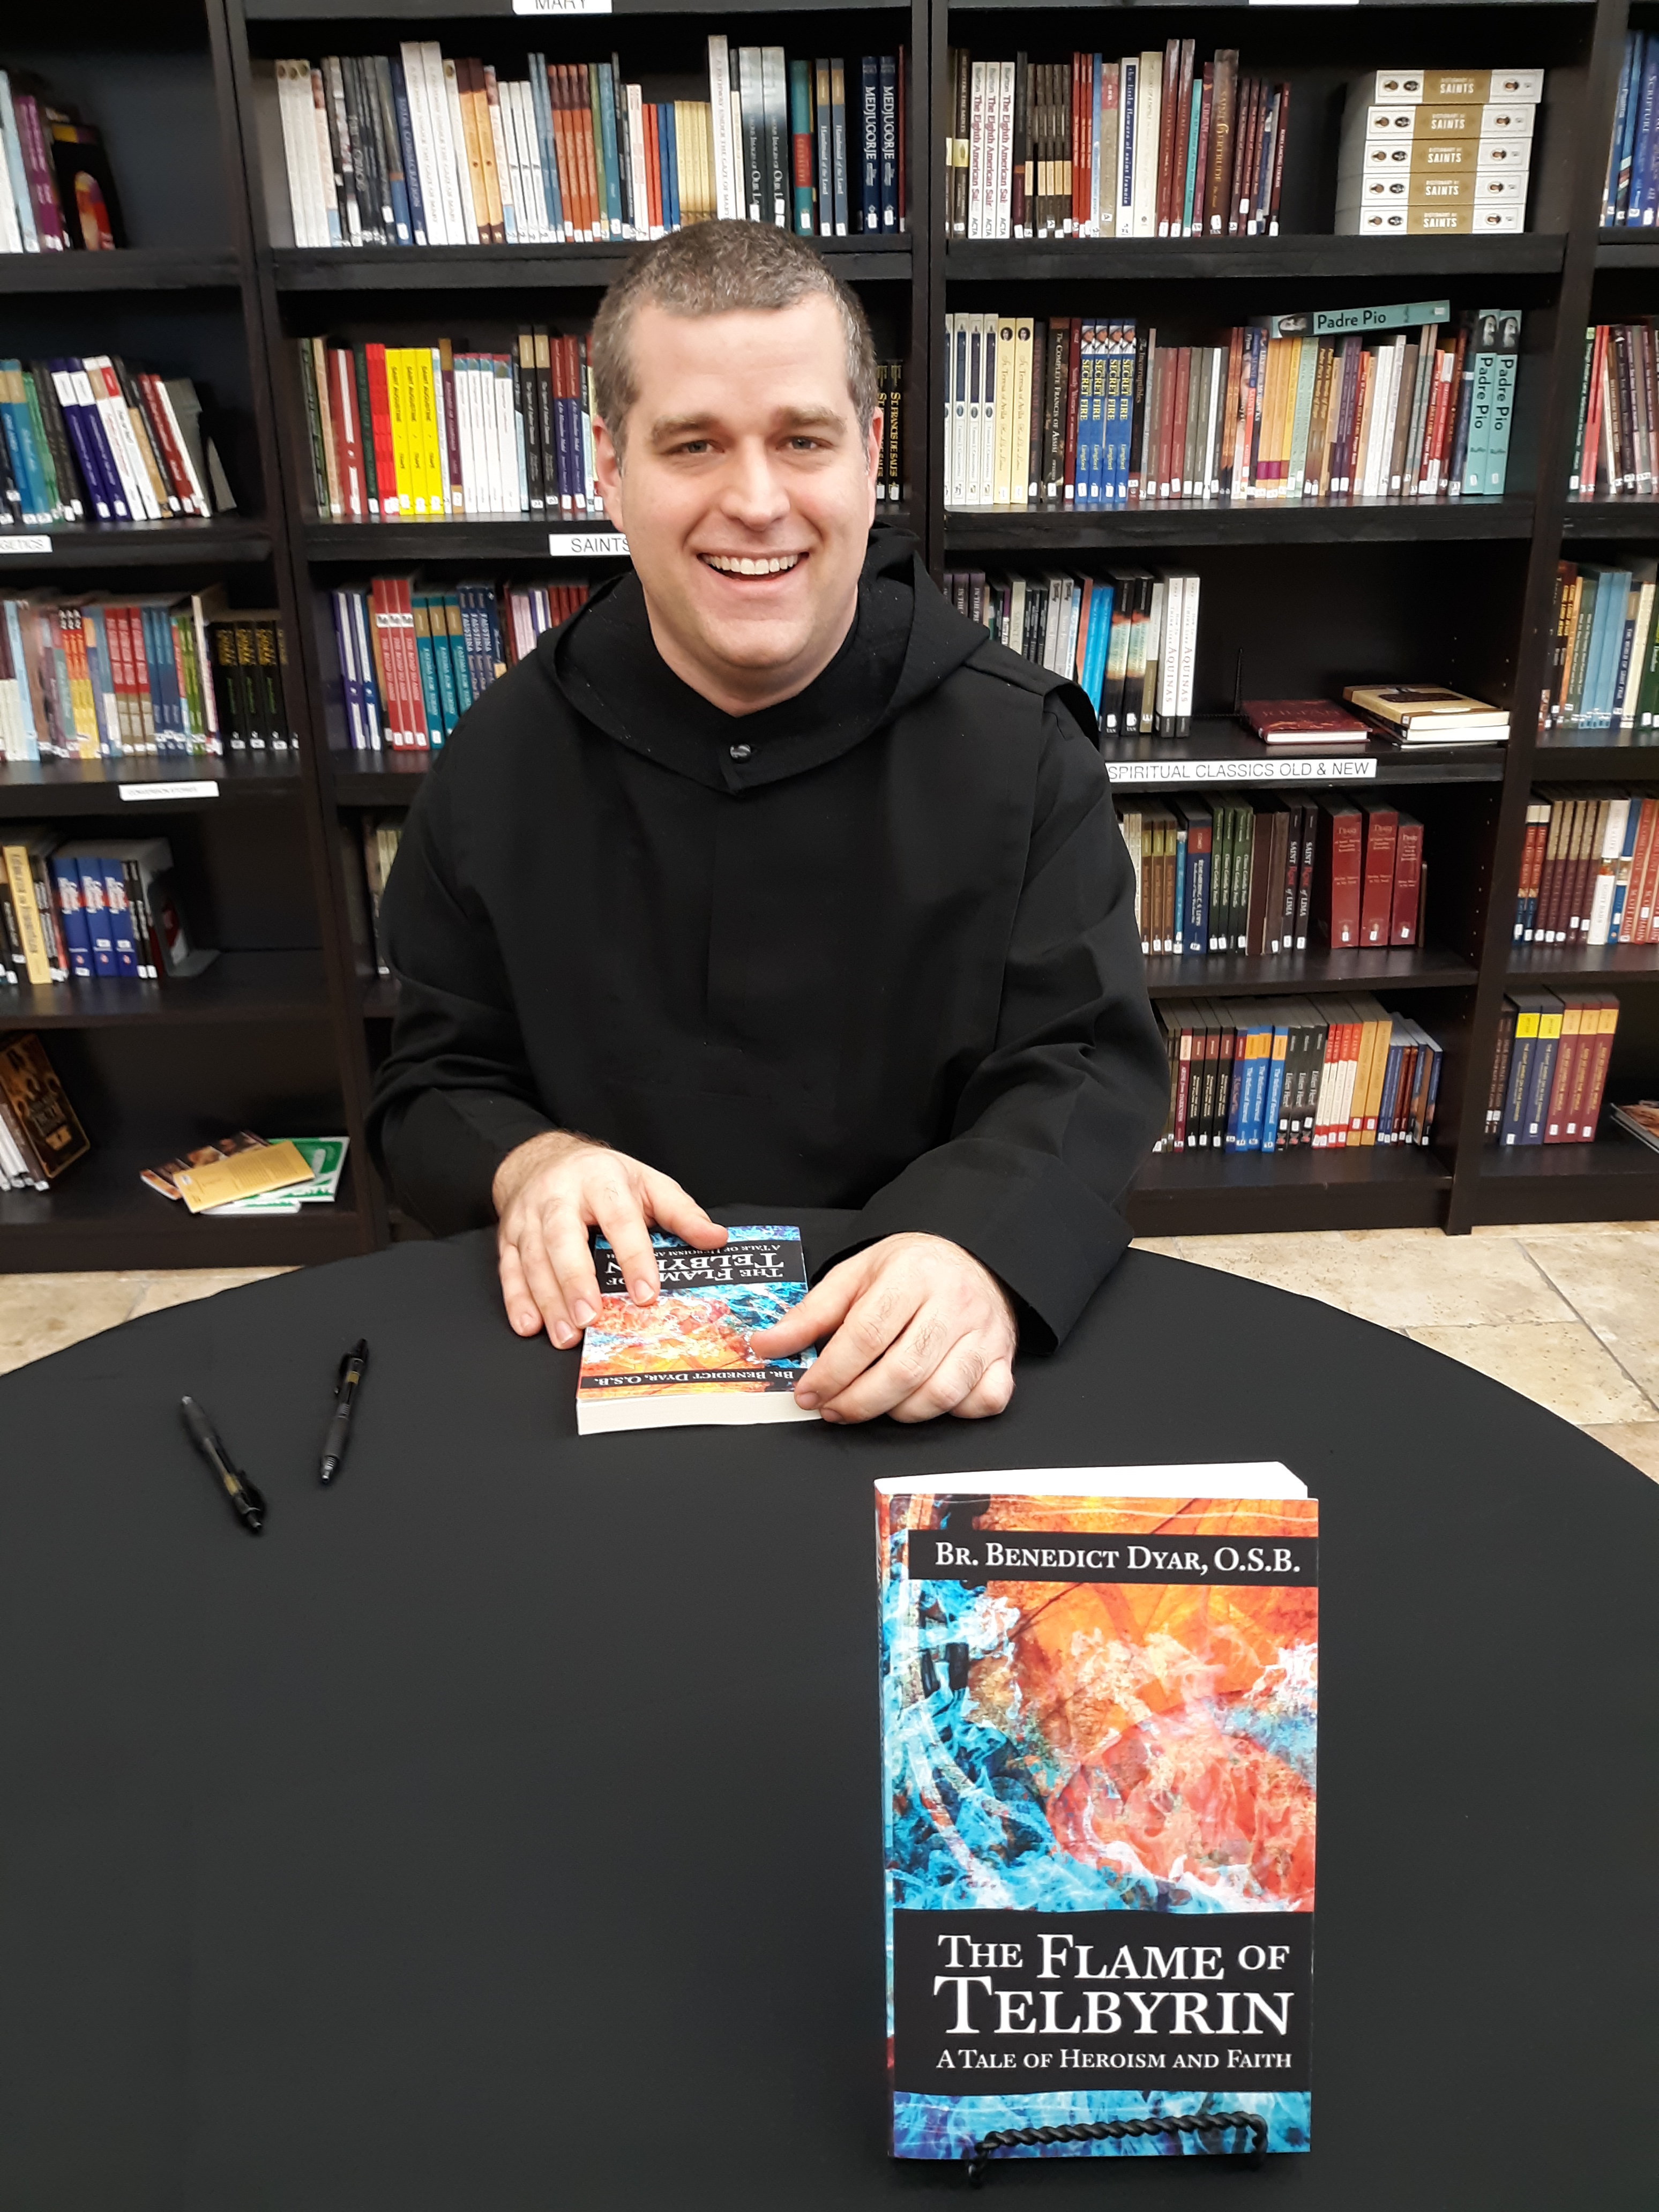 br._benedict_dyar_with_book.jpg